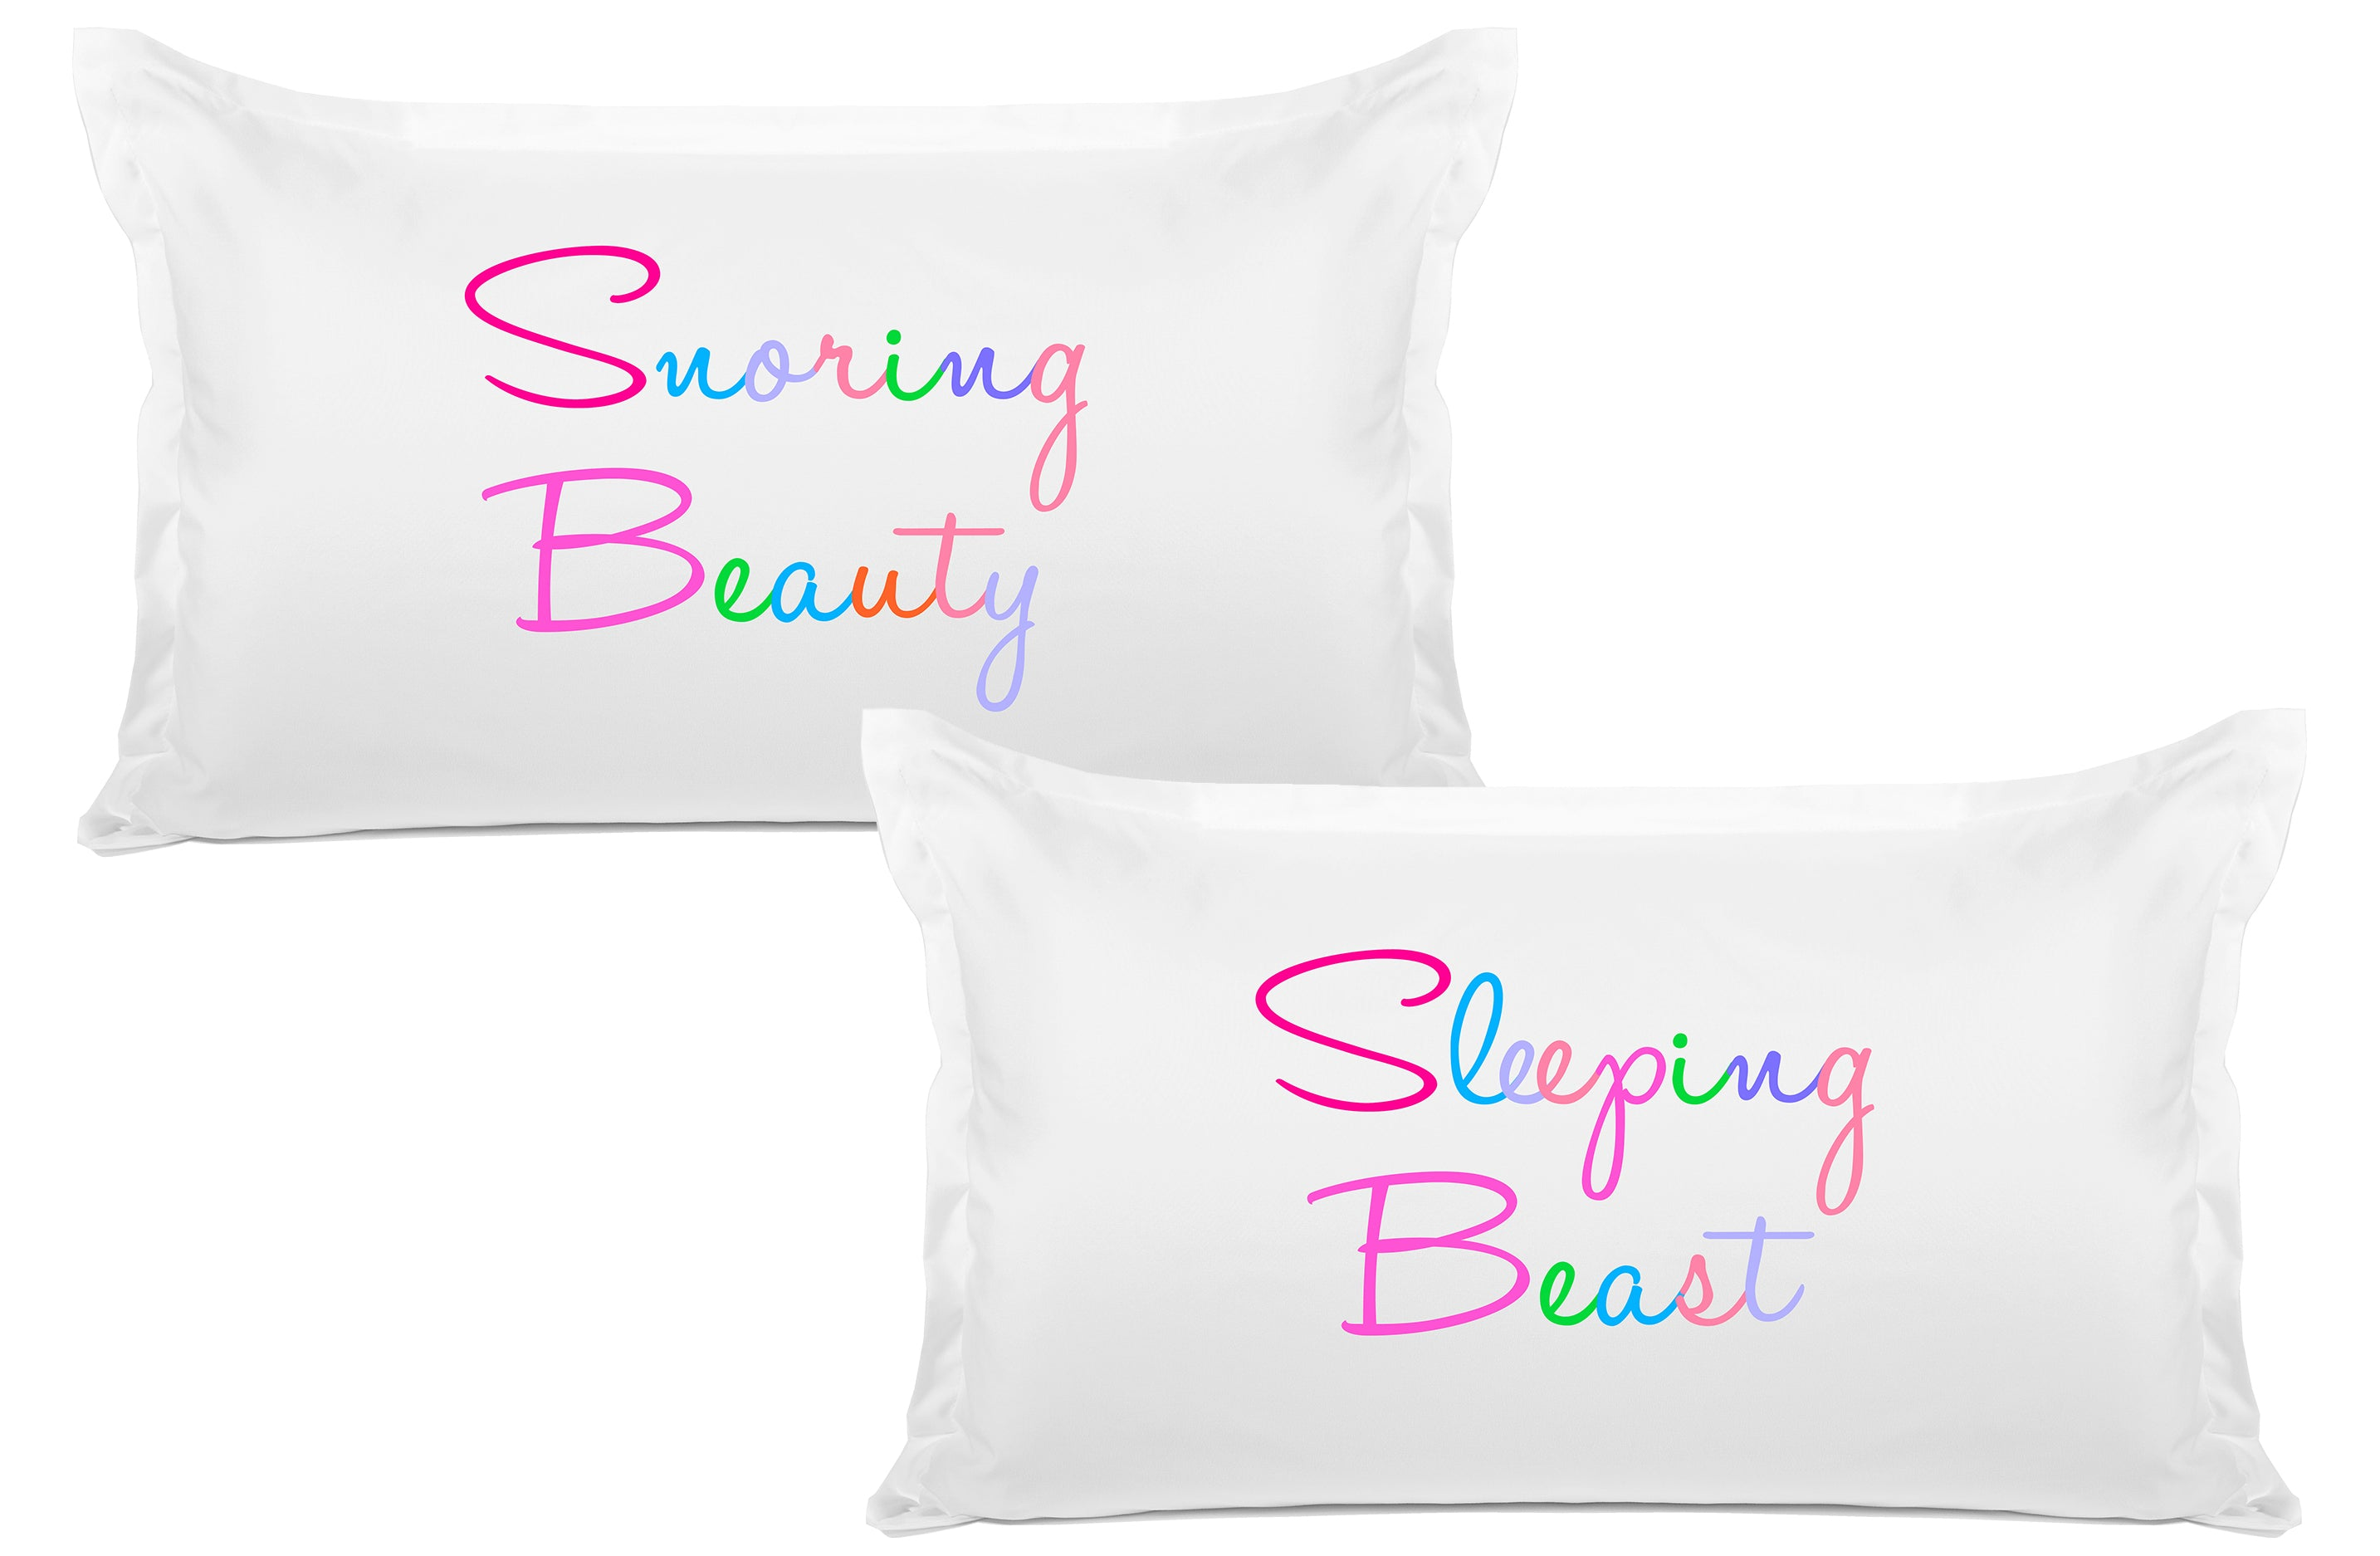 Snoring Beauty, Sleeping Beast - His & Hers Pillowcase Collection-Di Lewis